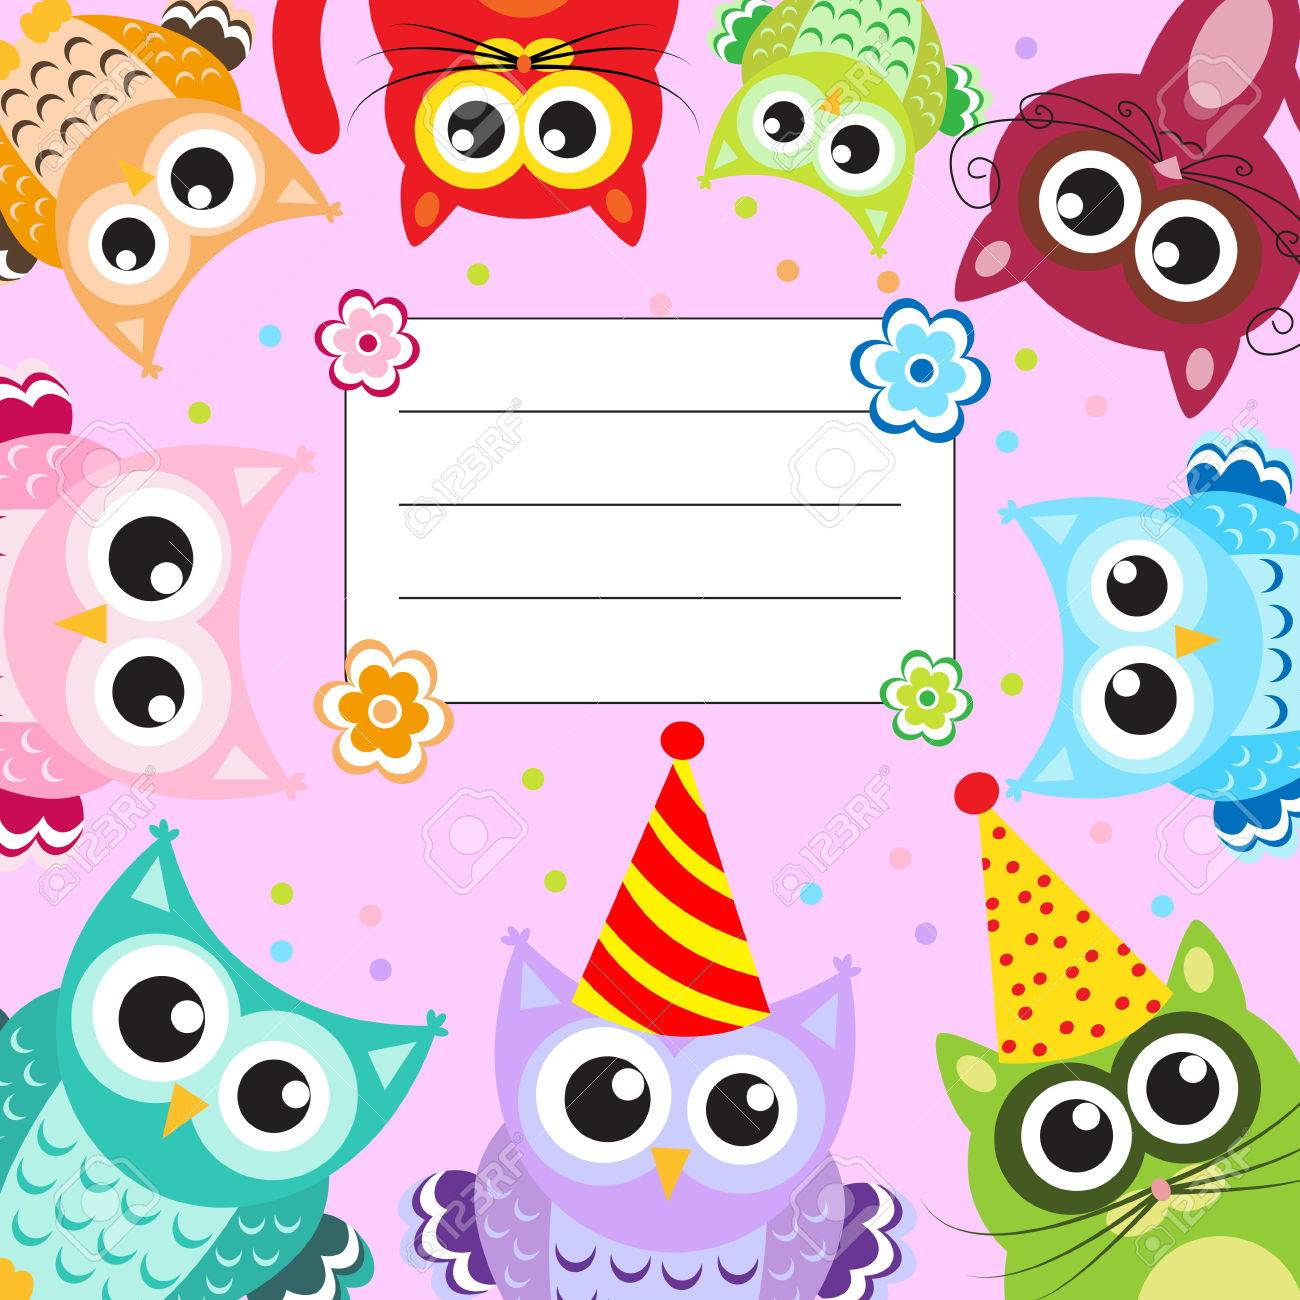 Greeting Happy Birthday Baby Animals Royalty Free Cliparts Vectors